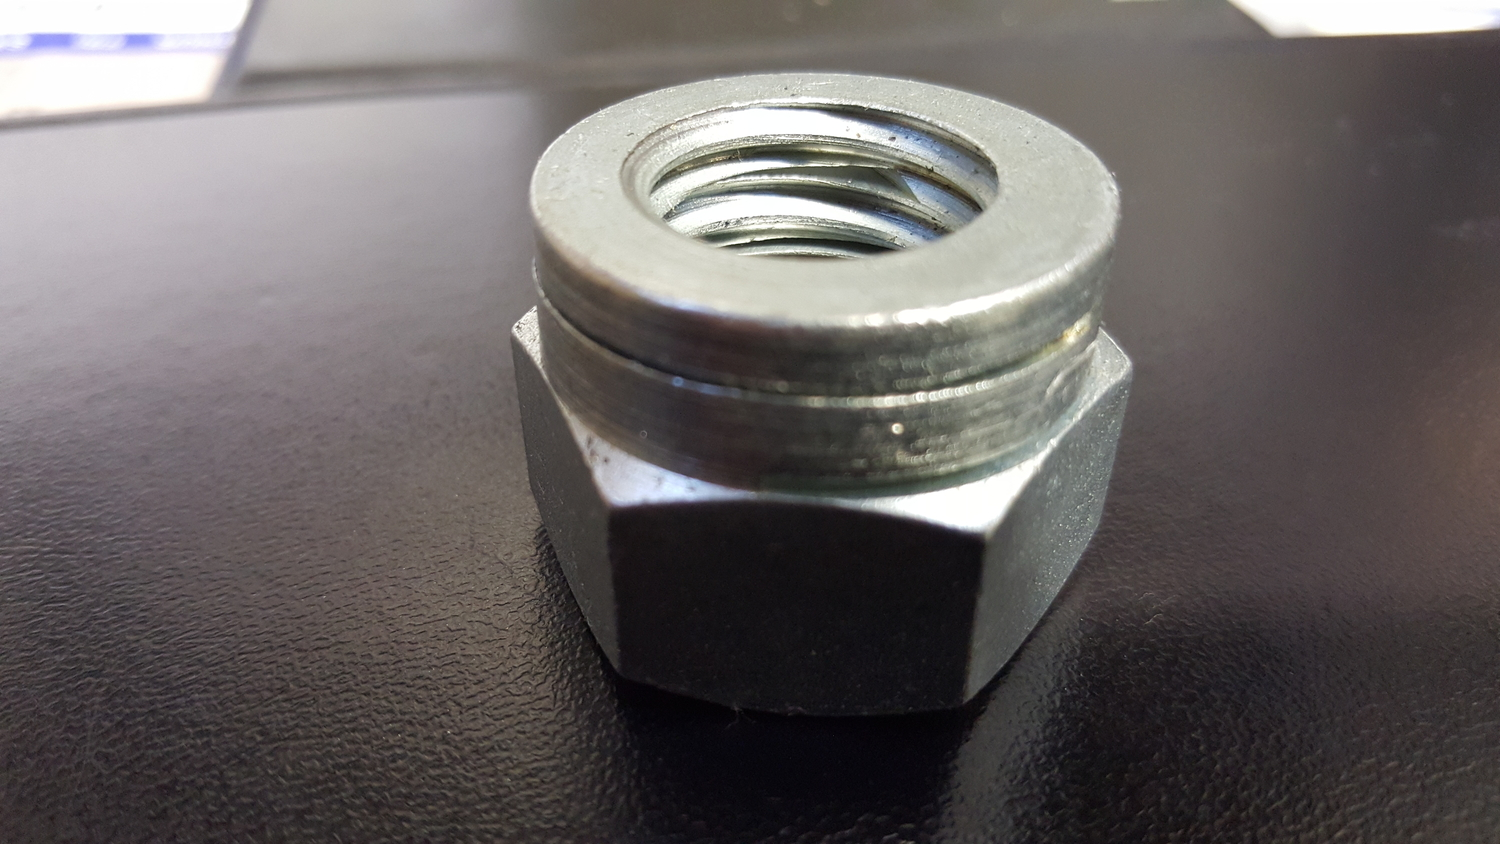 M20x1.5 Special Nuts